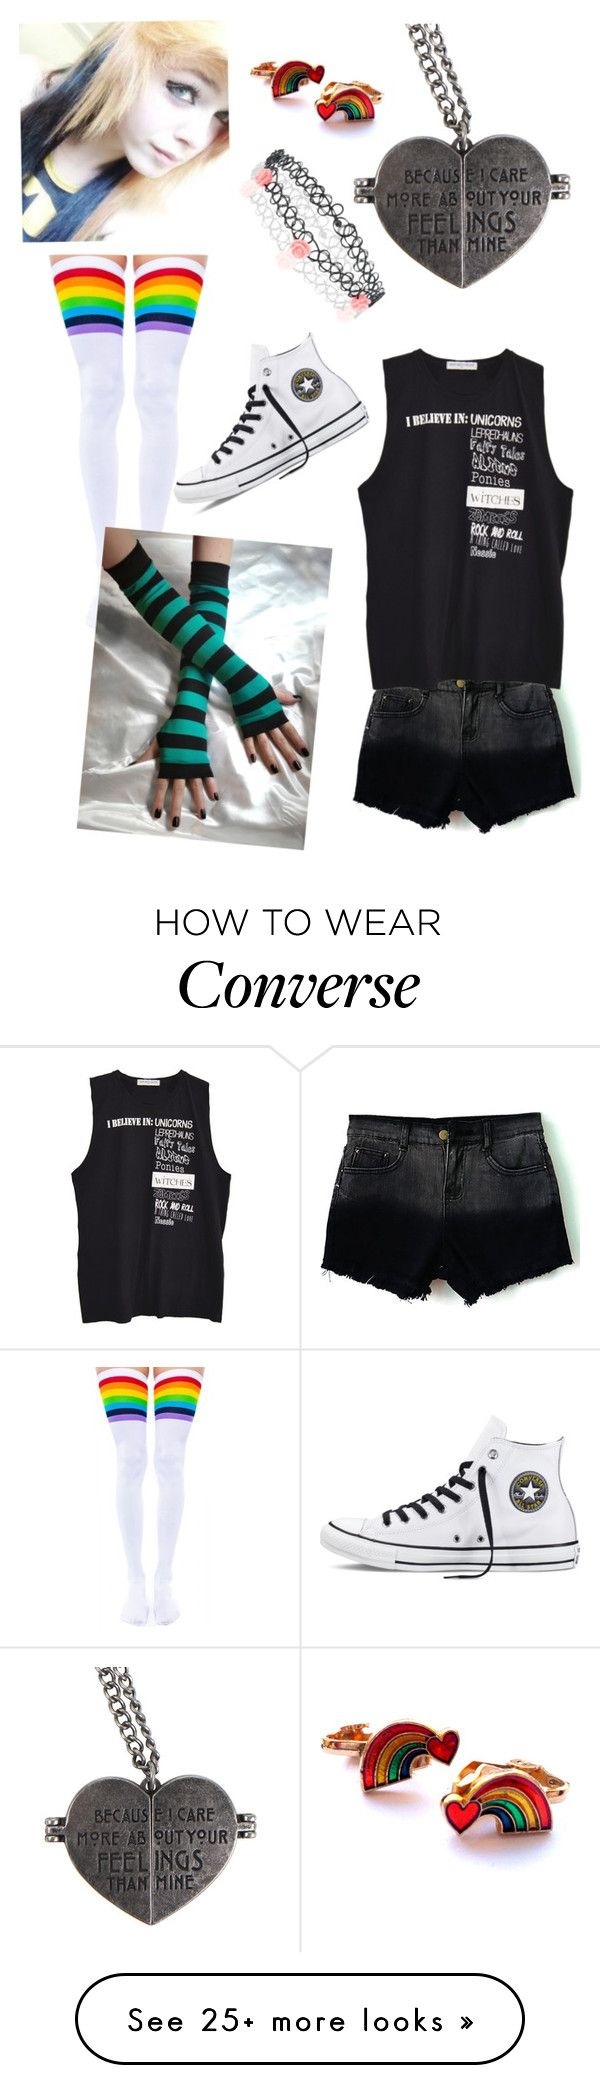 """""""Untitled #335"""" by unicorn1233 on Polyvore featuring Leg Avenue, Converse, Monsoon, women's clothing, women, female, woman, misses and juniors"""